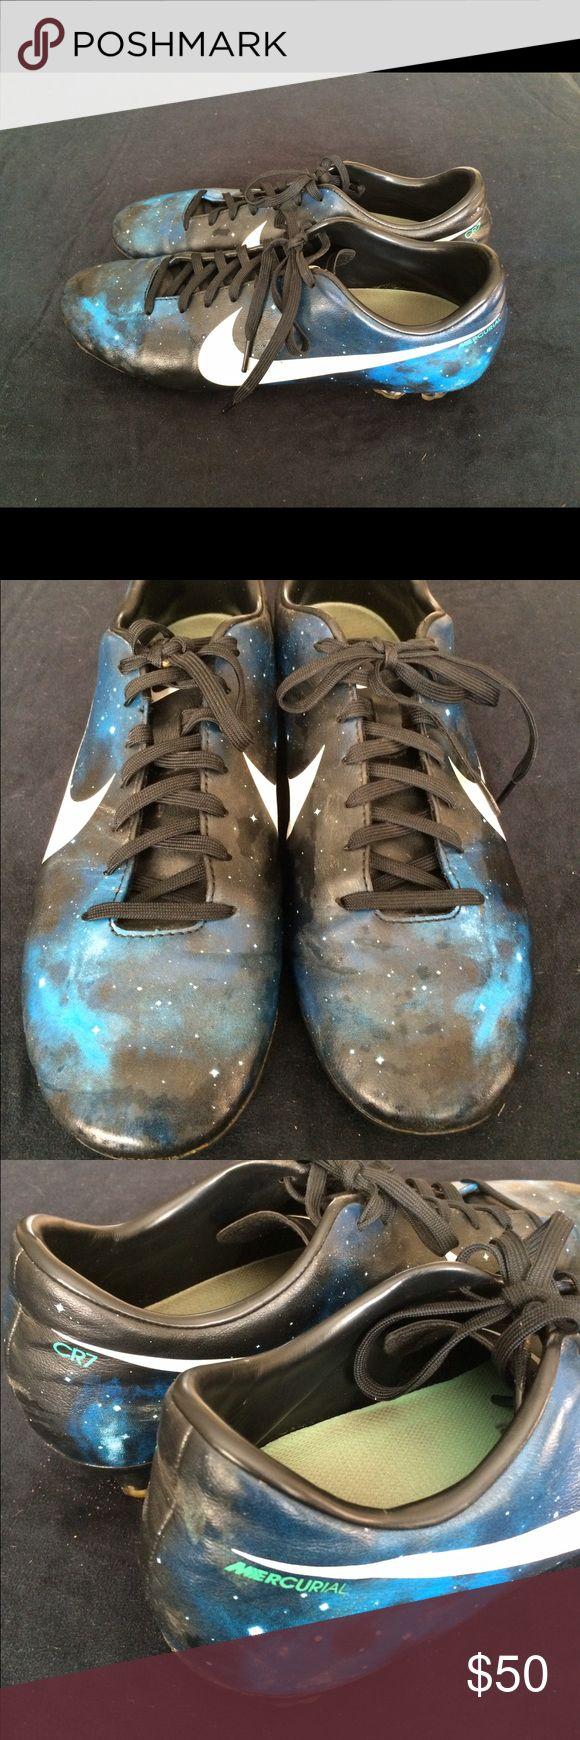 Nike MERCURIAL CR7 Soccer Cleats Mens Nike Mercurial CR 7 Soccer Cleats. Overall very good condition Nike Shoes Athletic Shoes